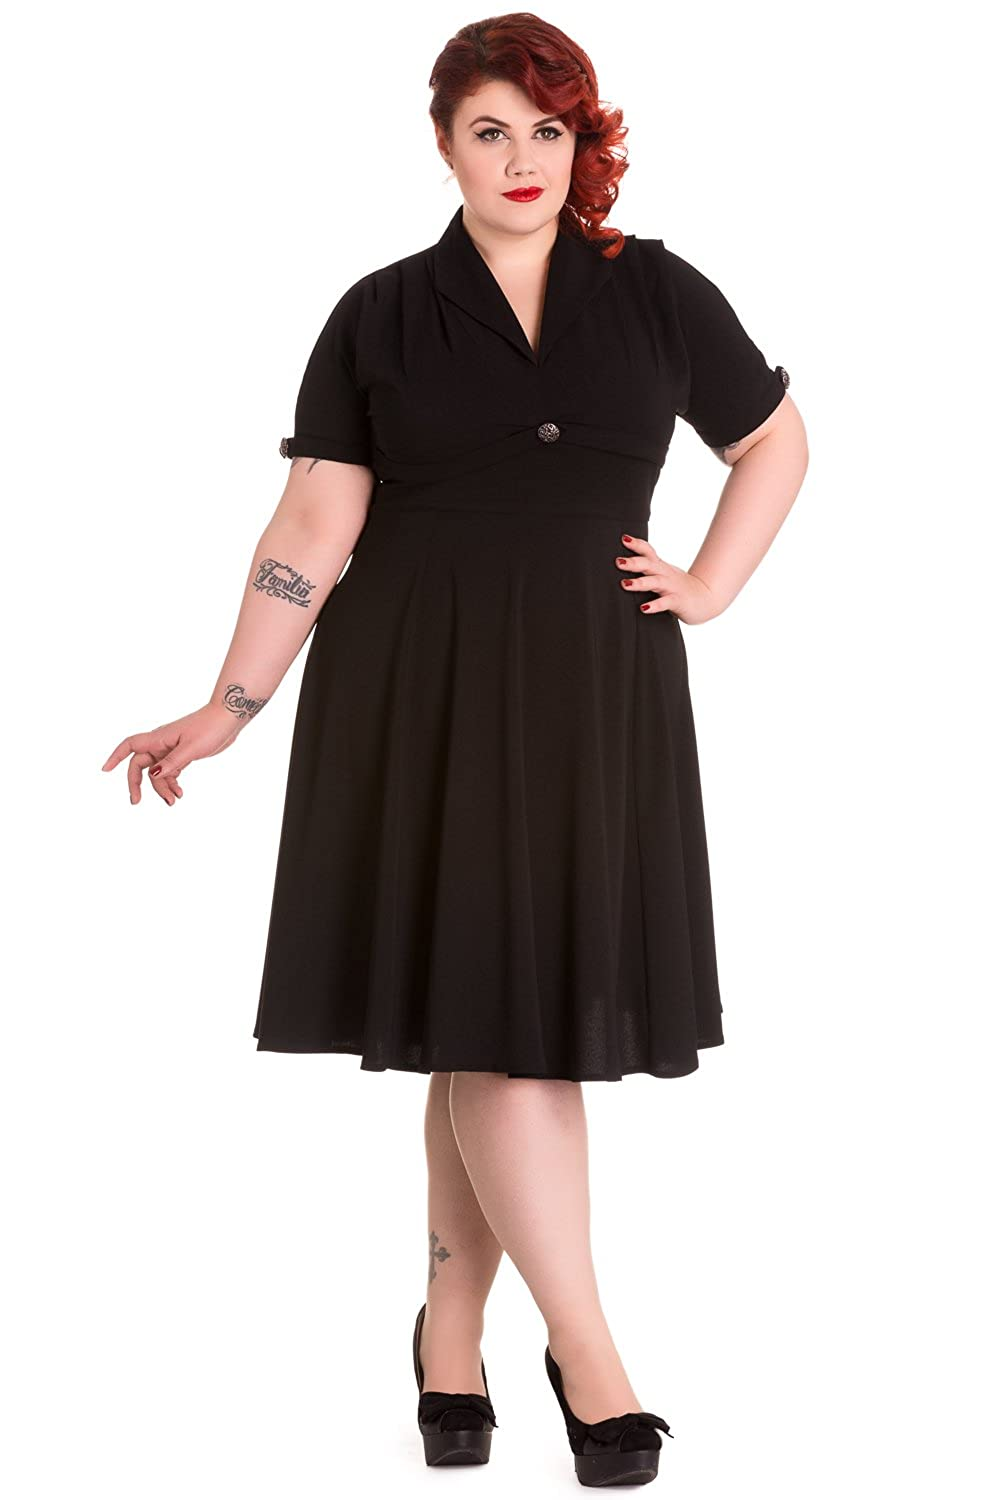 Plus size 70s inspired dresses